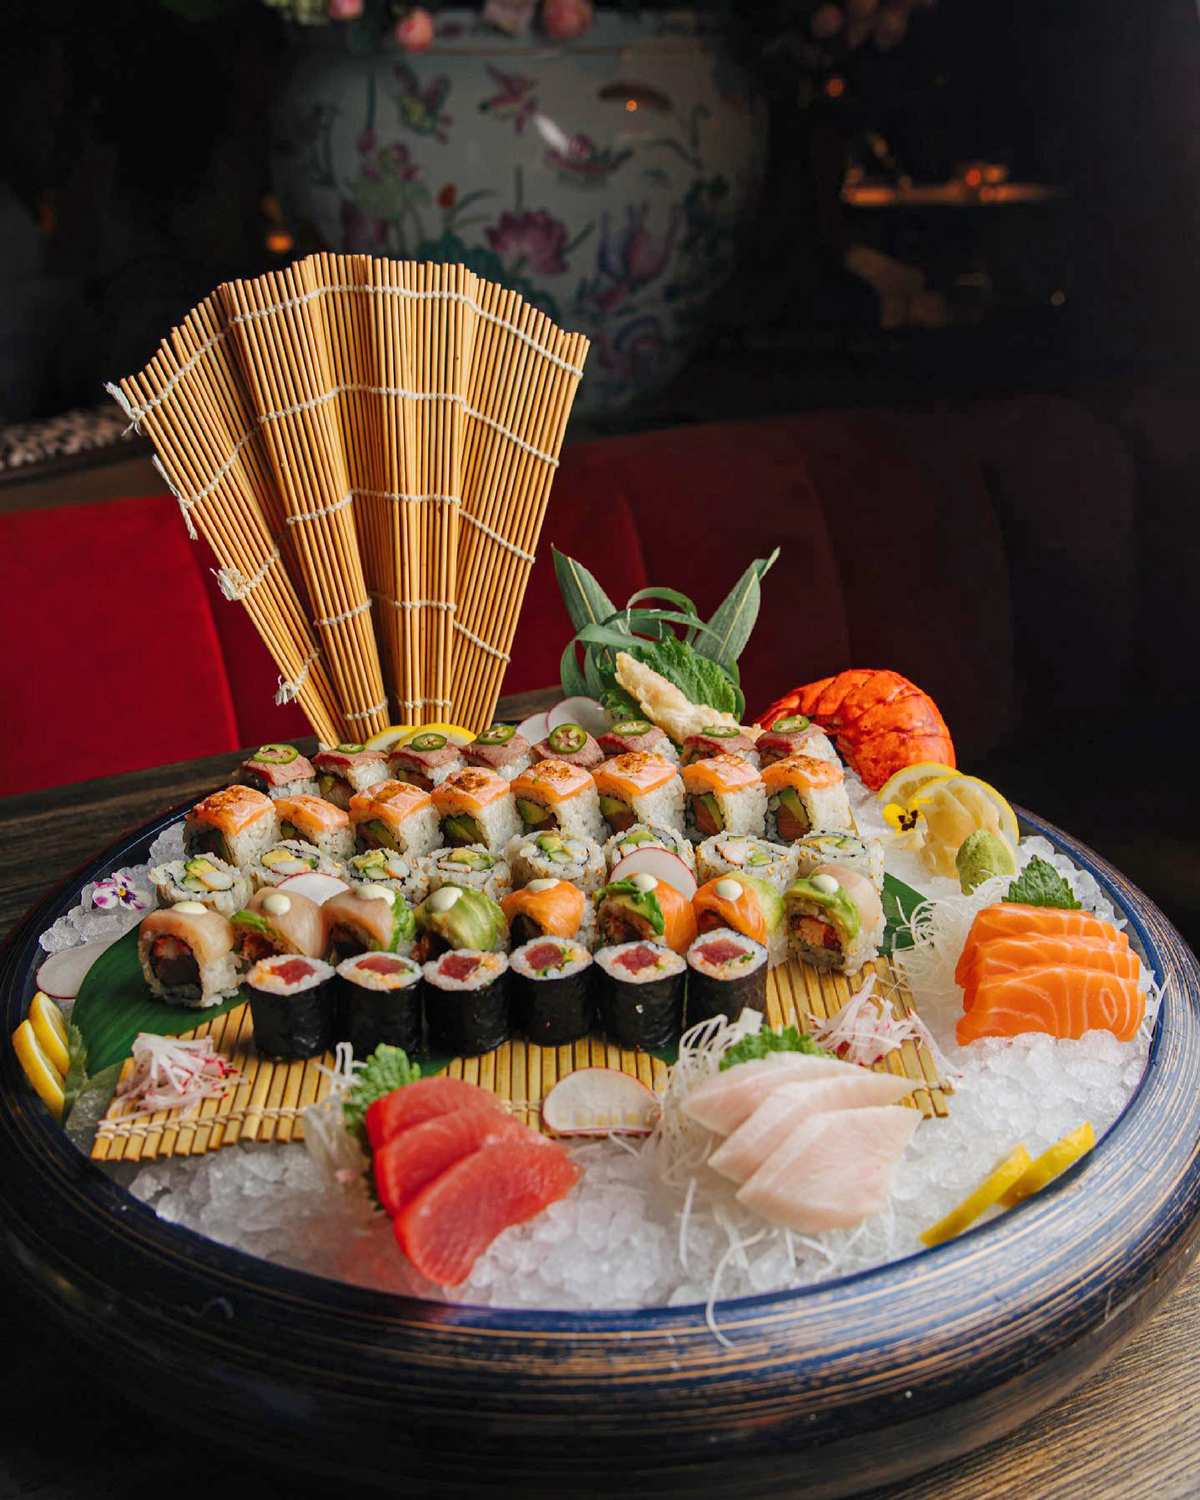 The Gramercy New Restaurant in Coral Gables sushi bento box